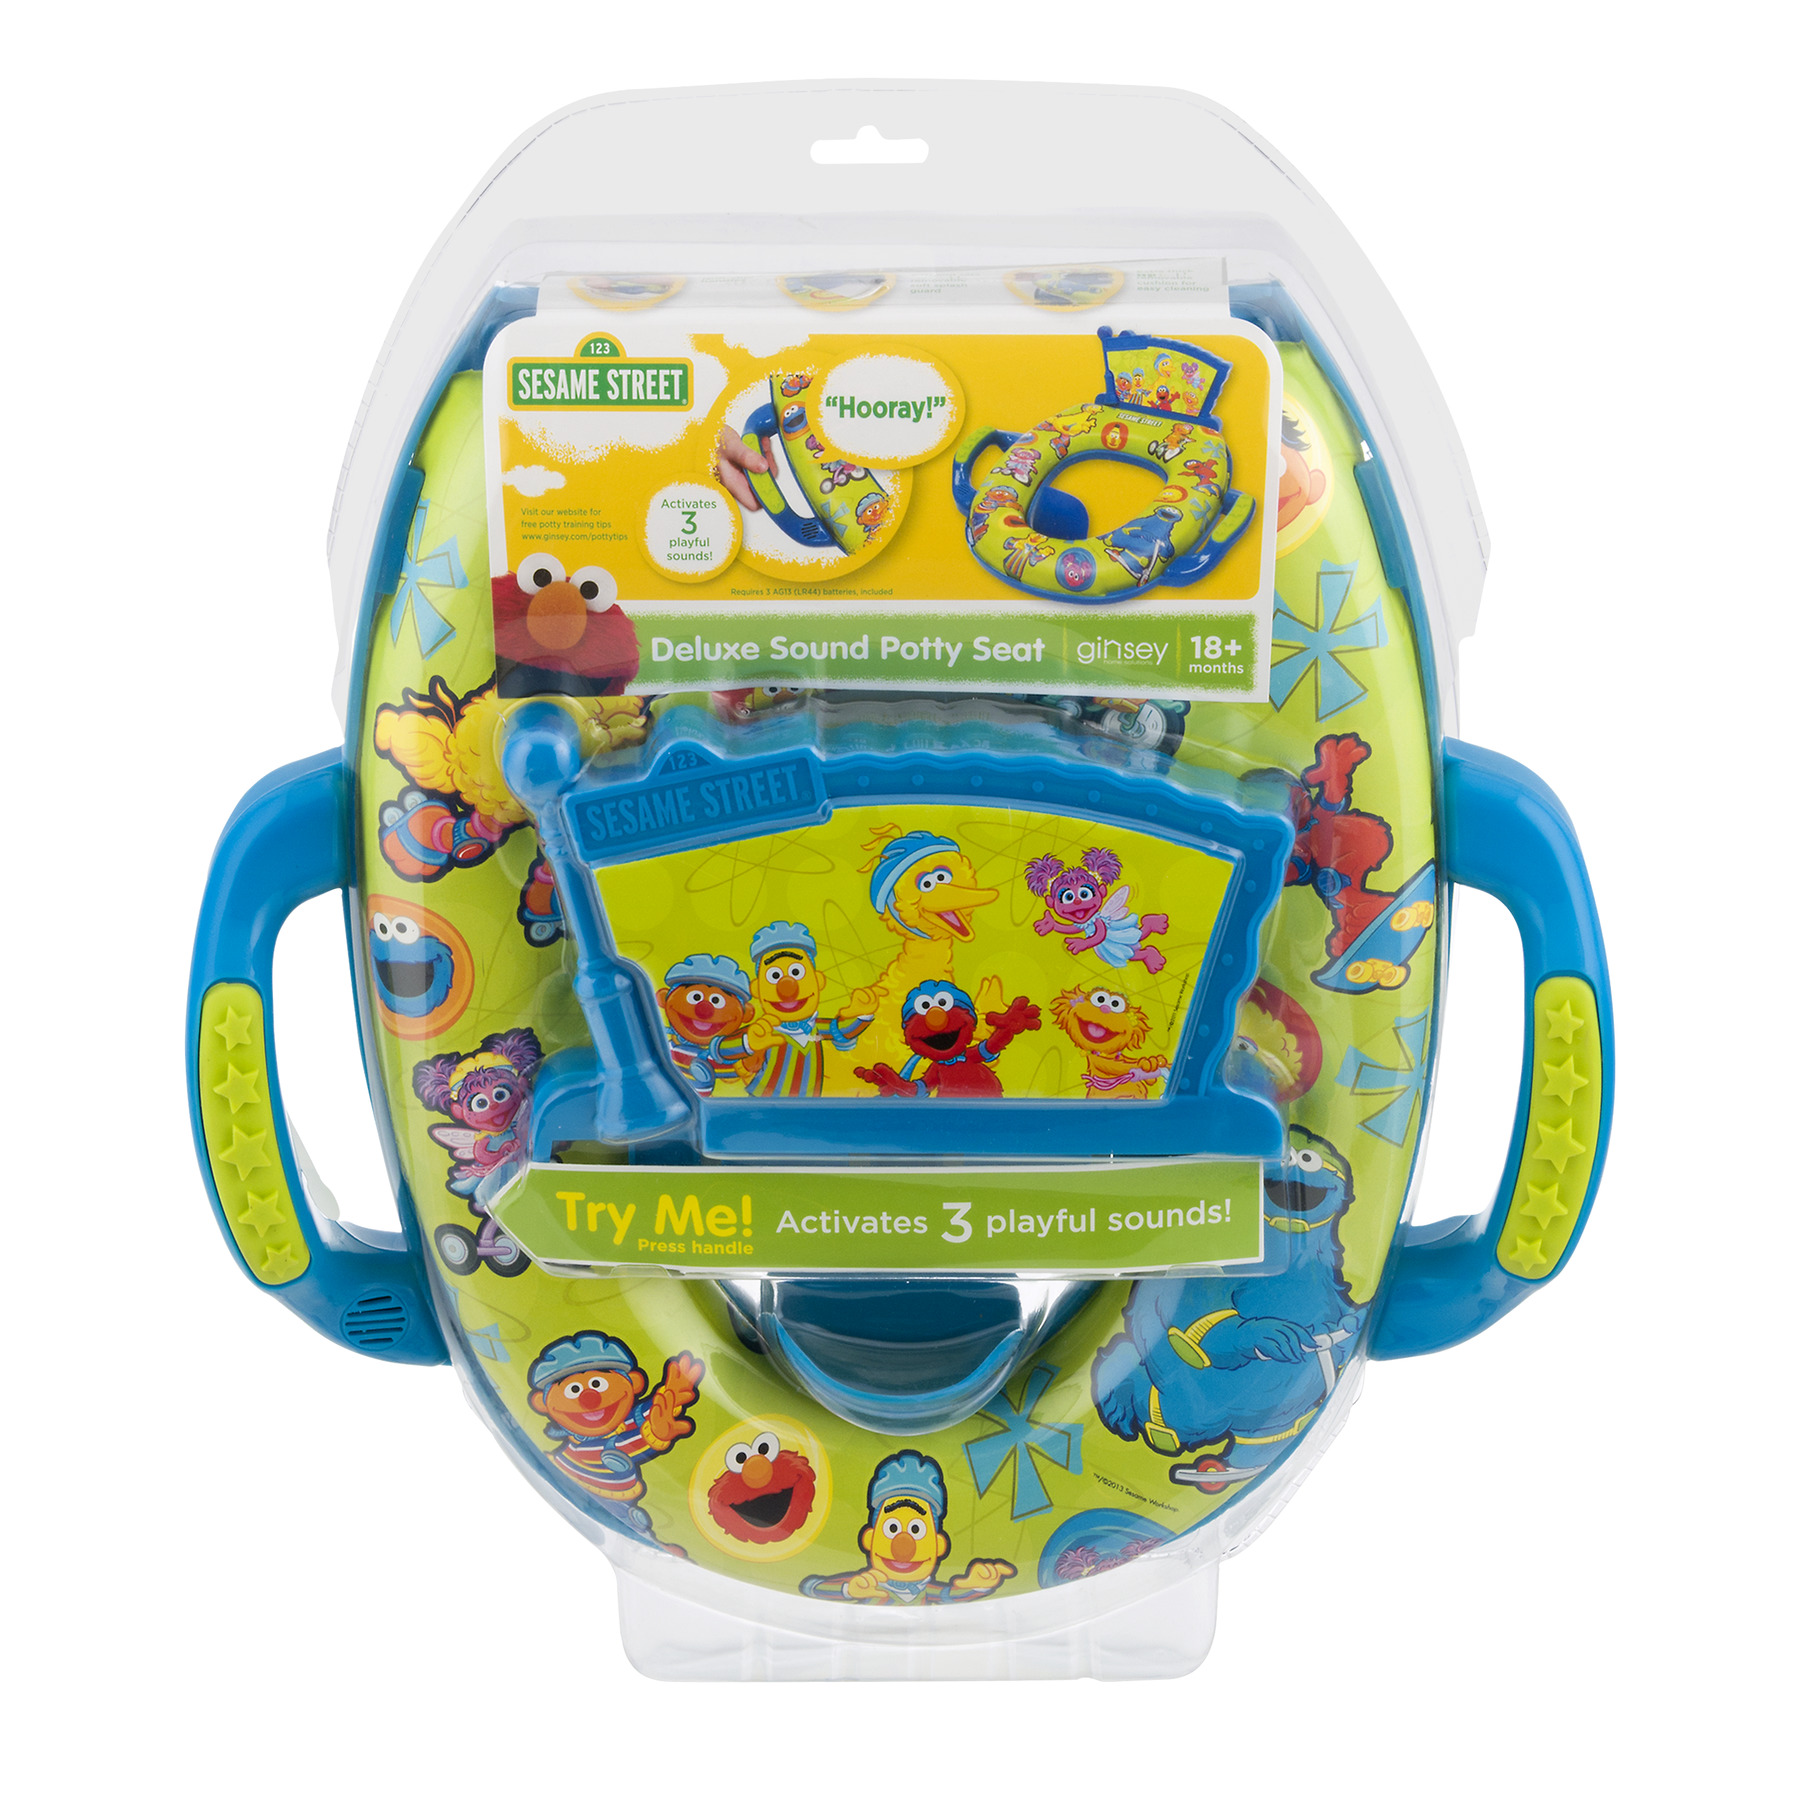 Sesame Street Deluxe Sound Potty Seat, 1.0 CT